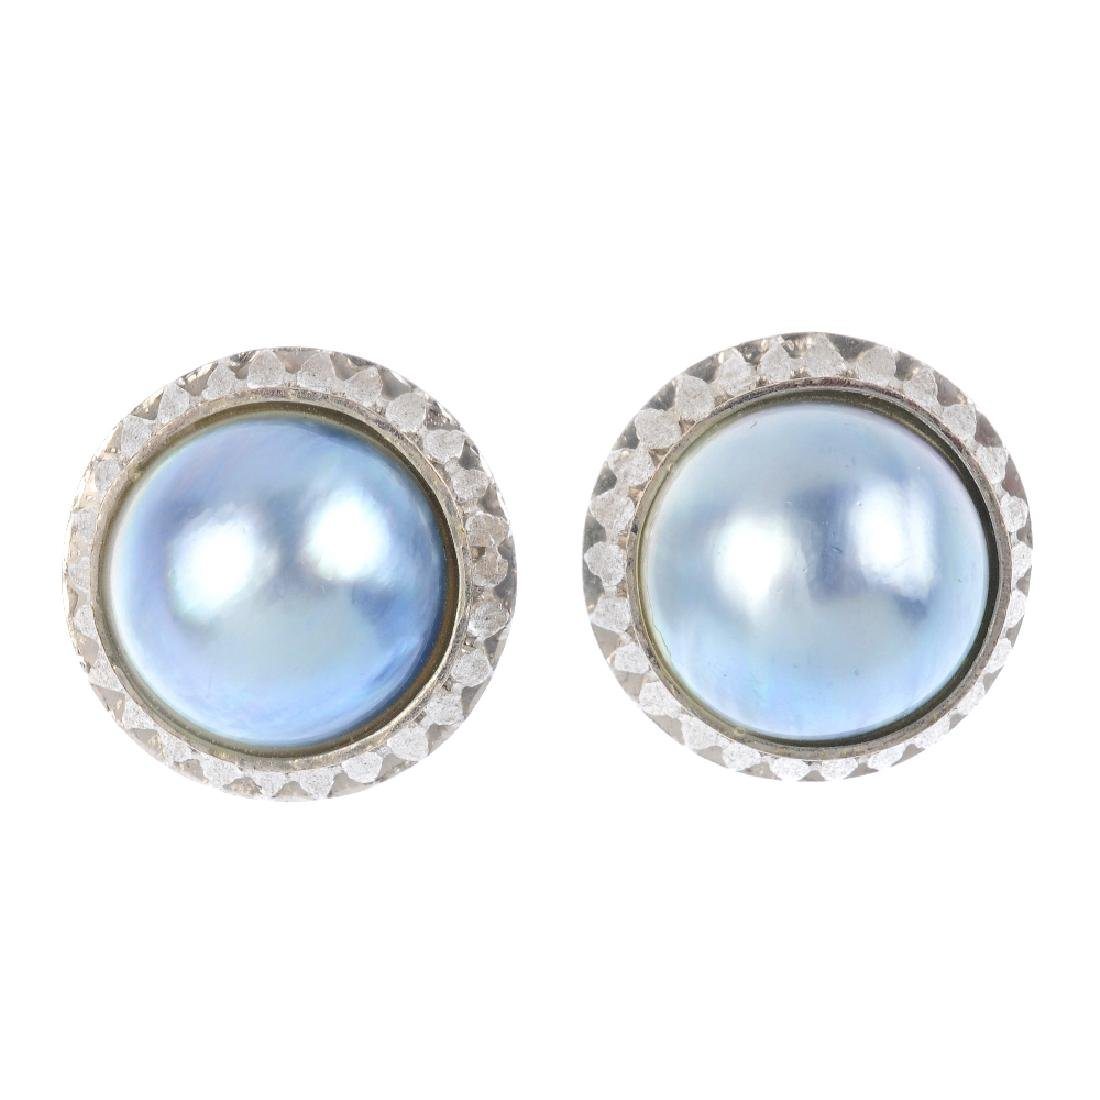 A pair of mabe pearl earrings. Each designed as a